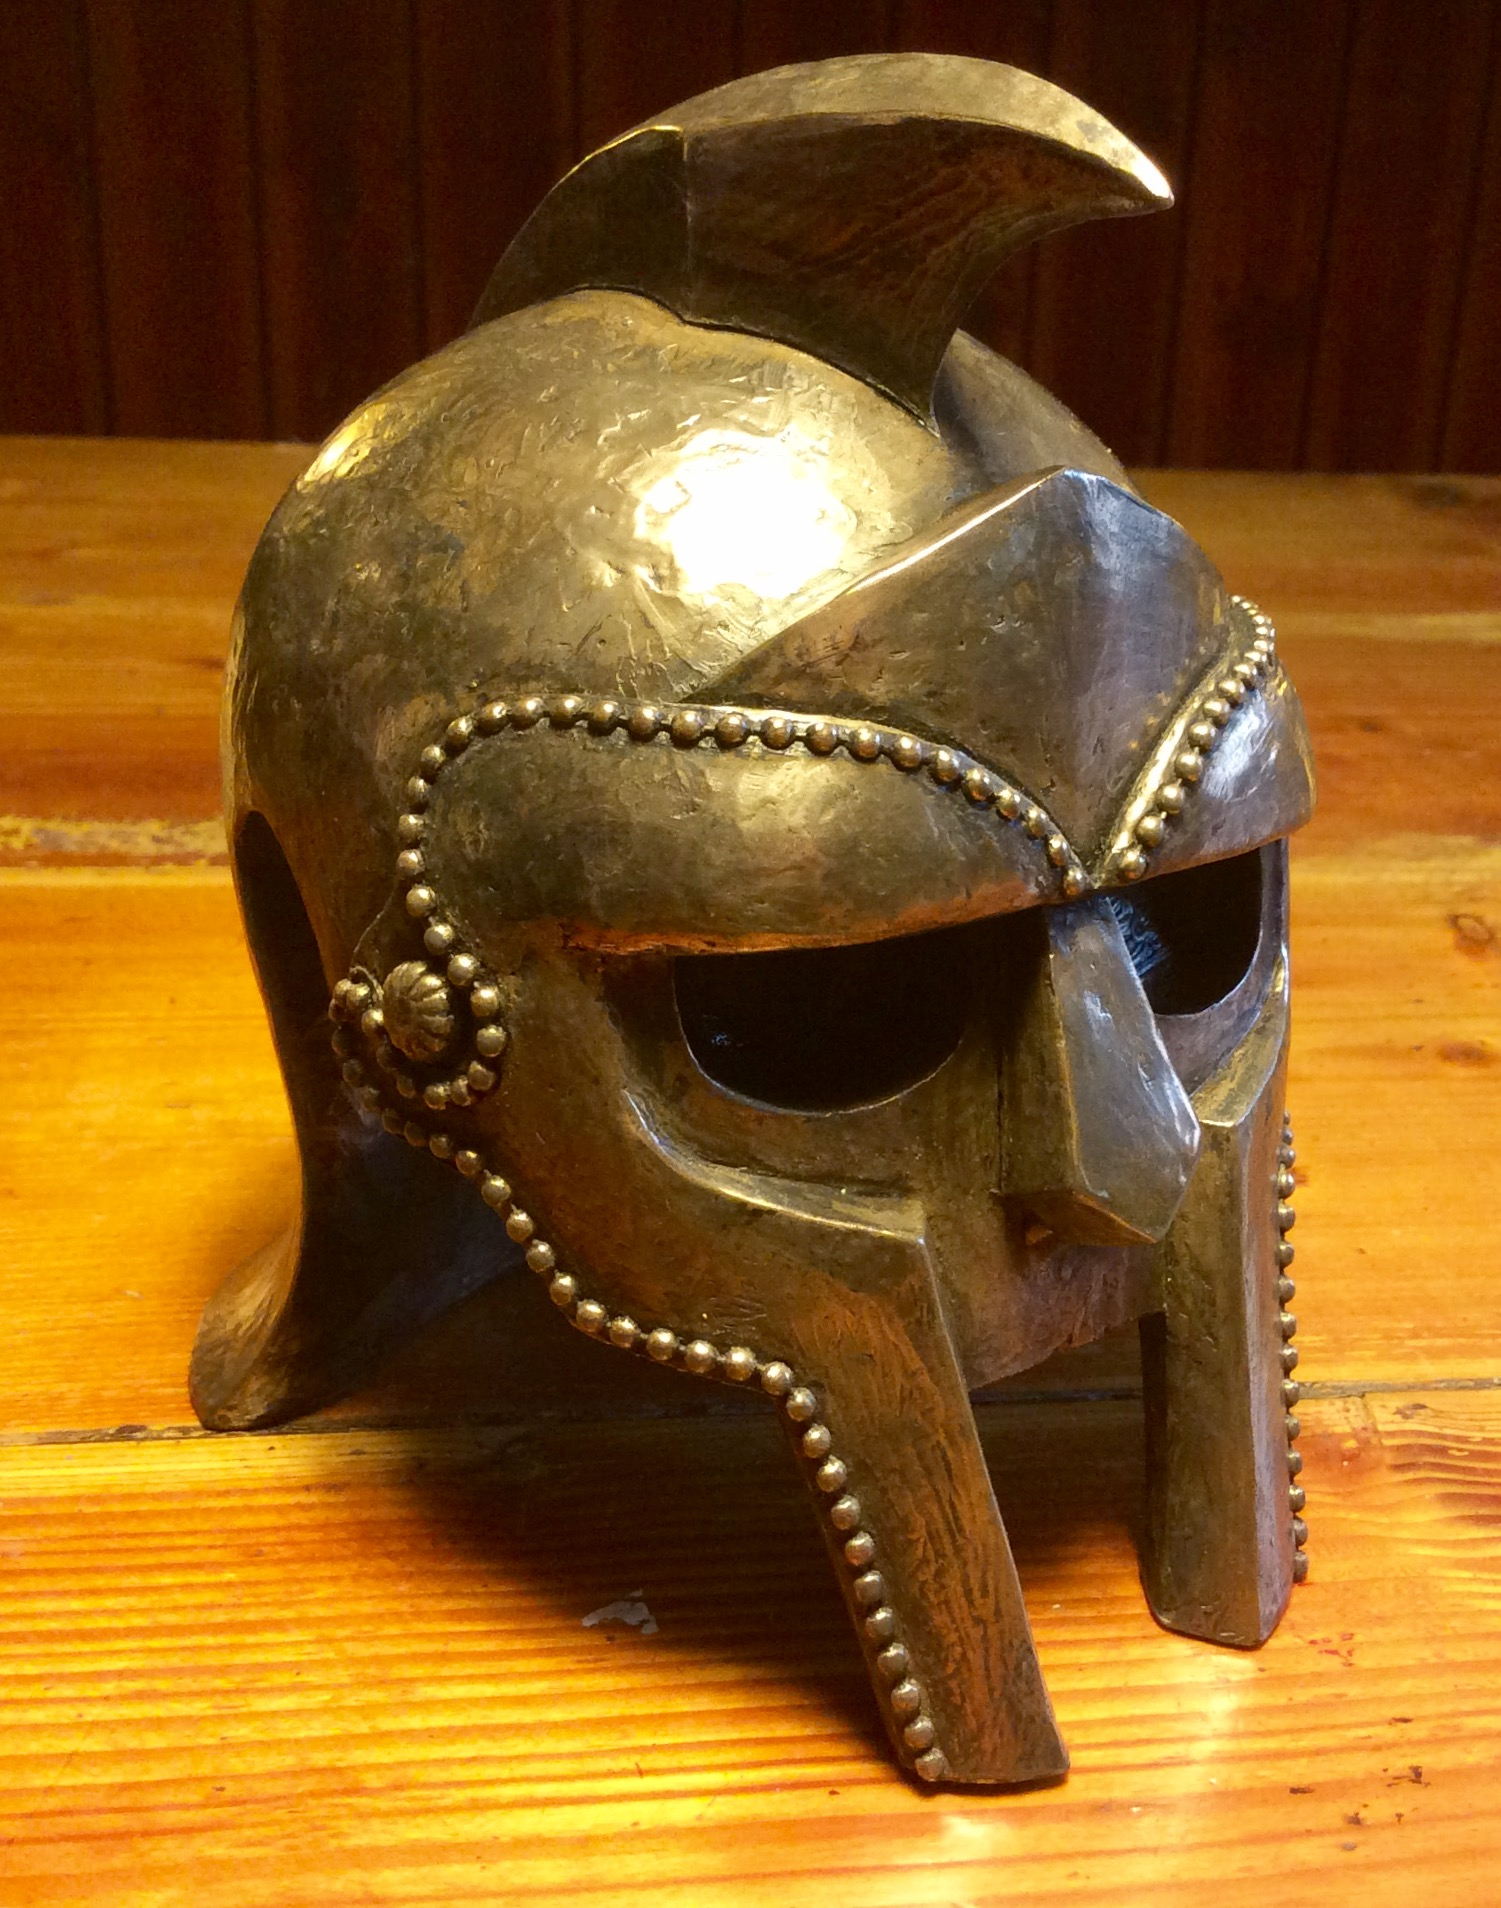 Gladiator helmet award